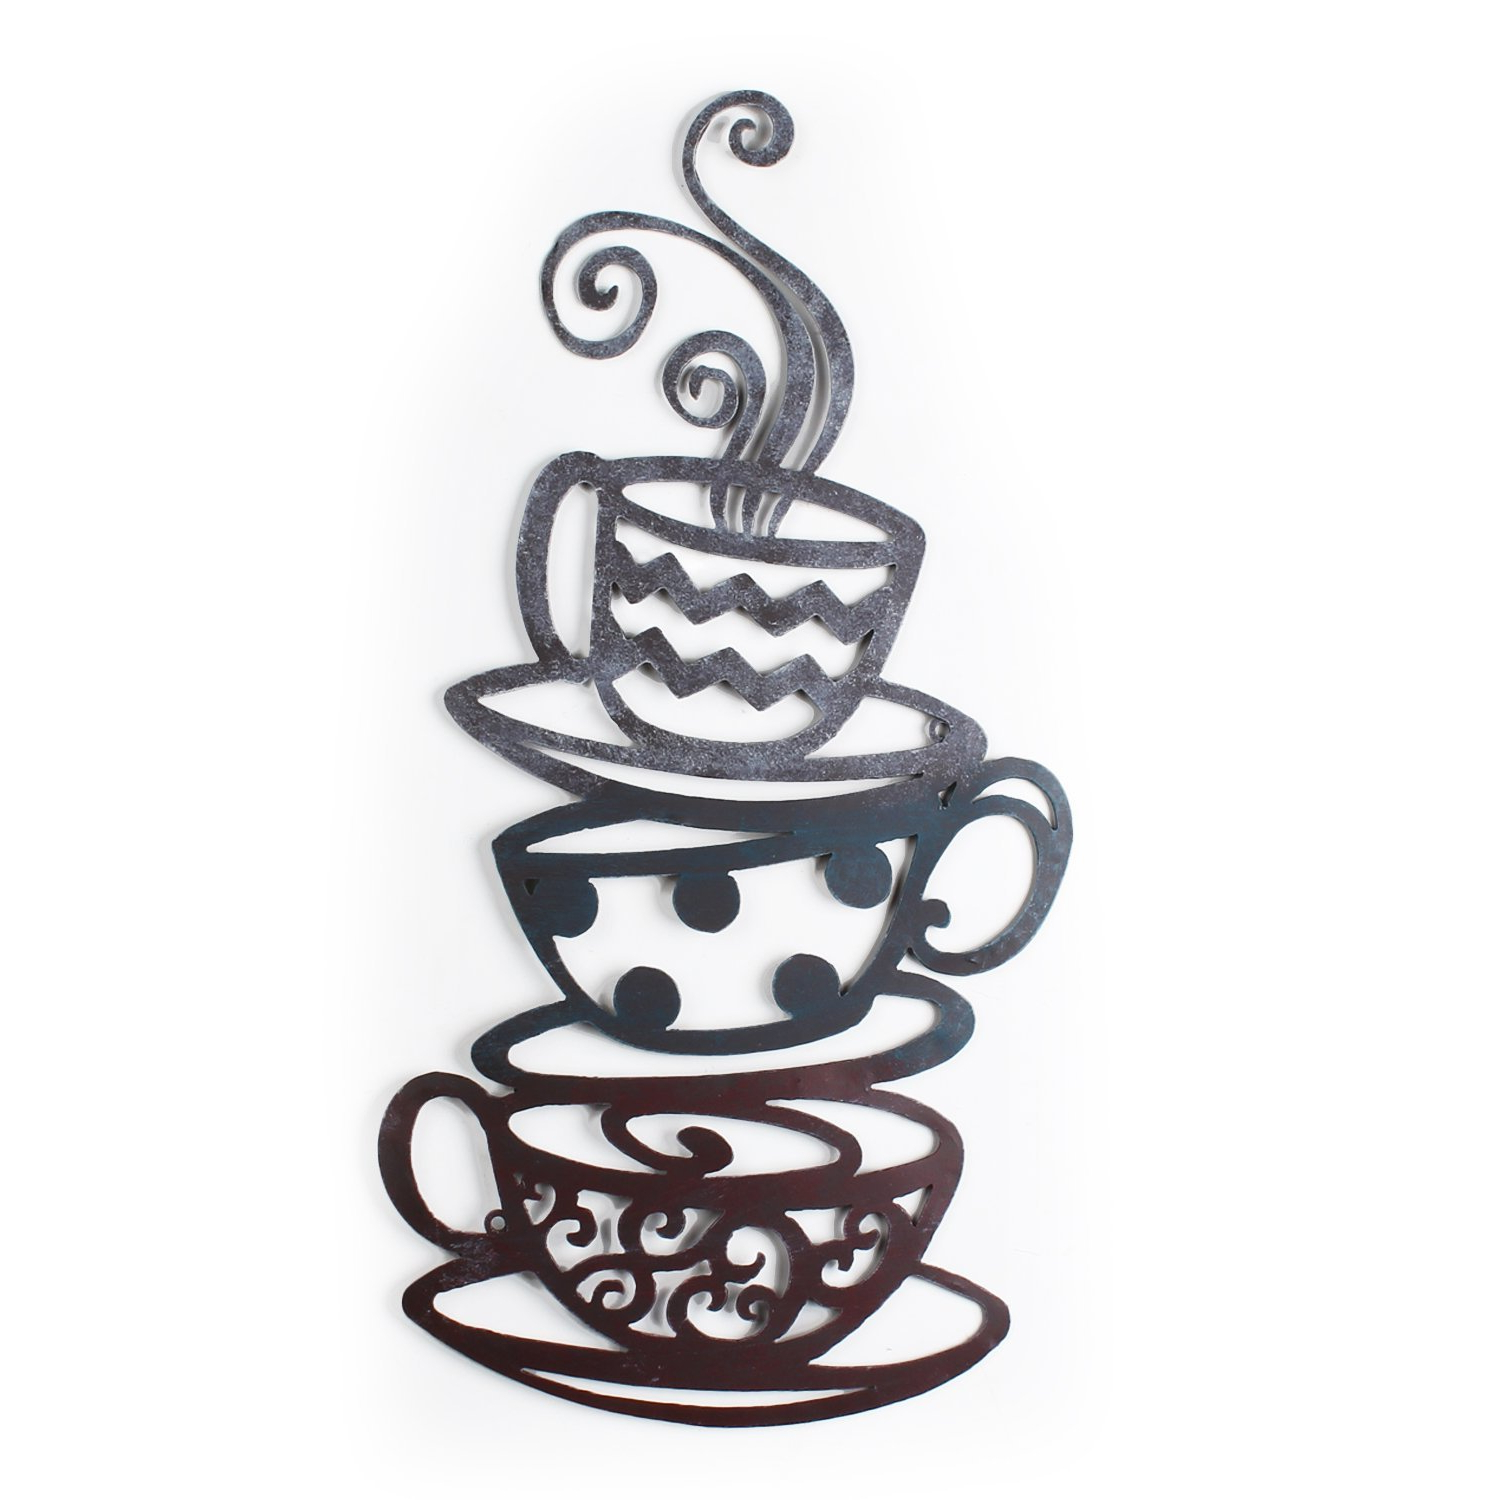 Decorative Three Stacked Coffee Tea Cups Iron Widget Wall Decor Throughout Favorite Amazon: Adeco Dn0008 Decorative Iron Wall Hanging Accents, Three (Gallery 2 of 20)